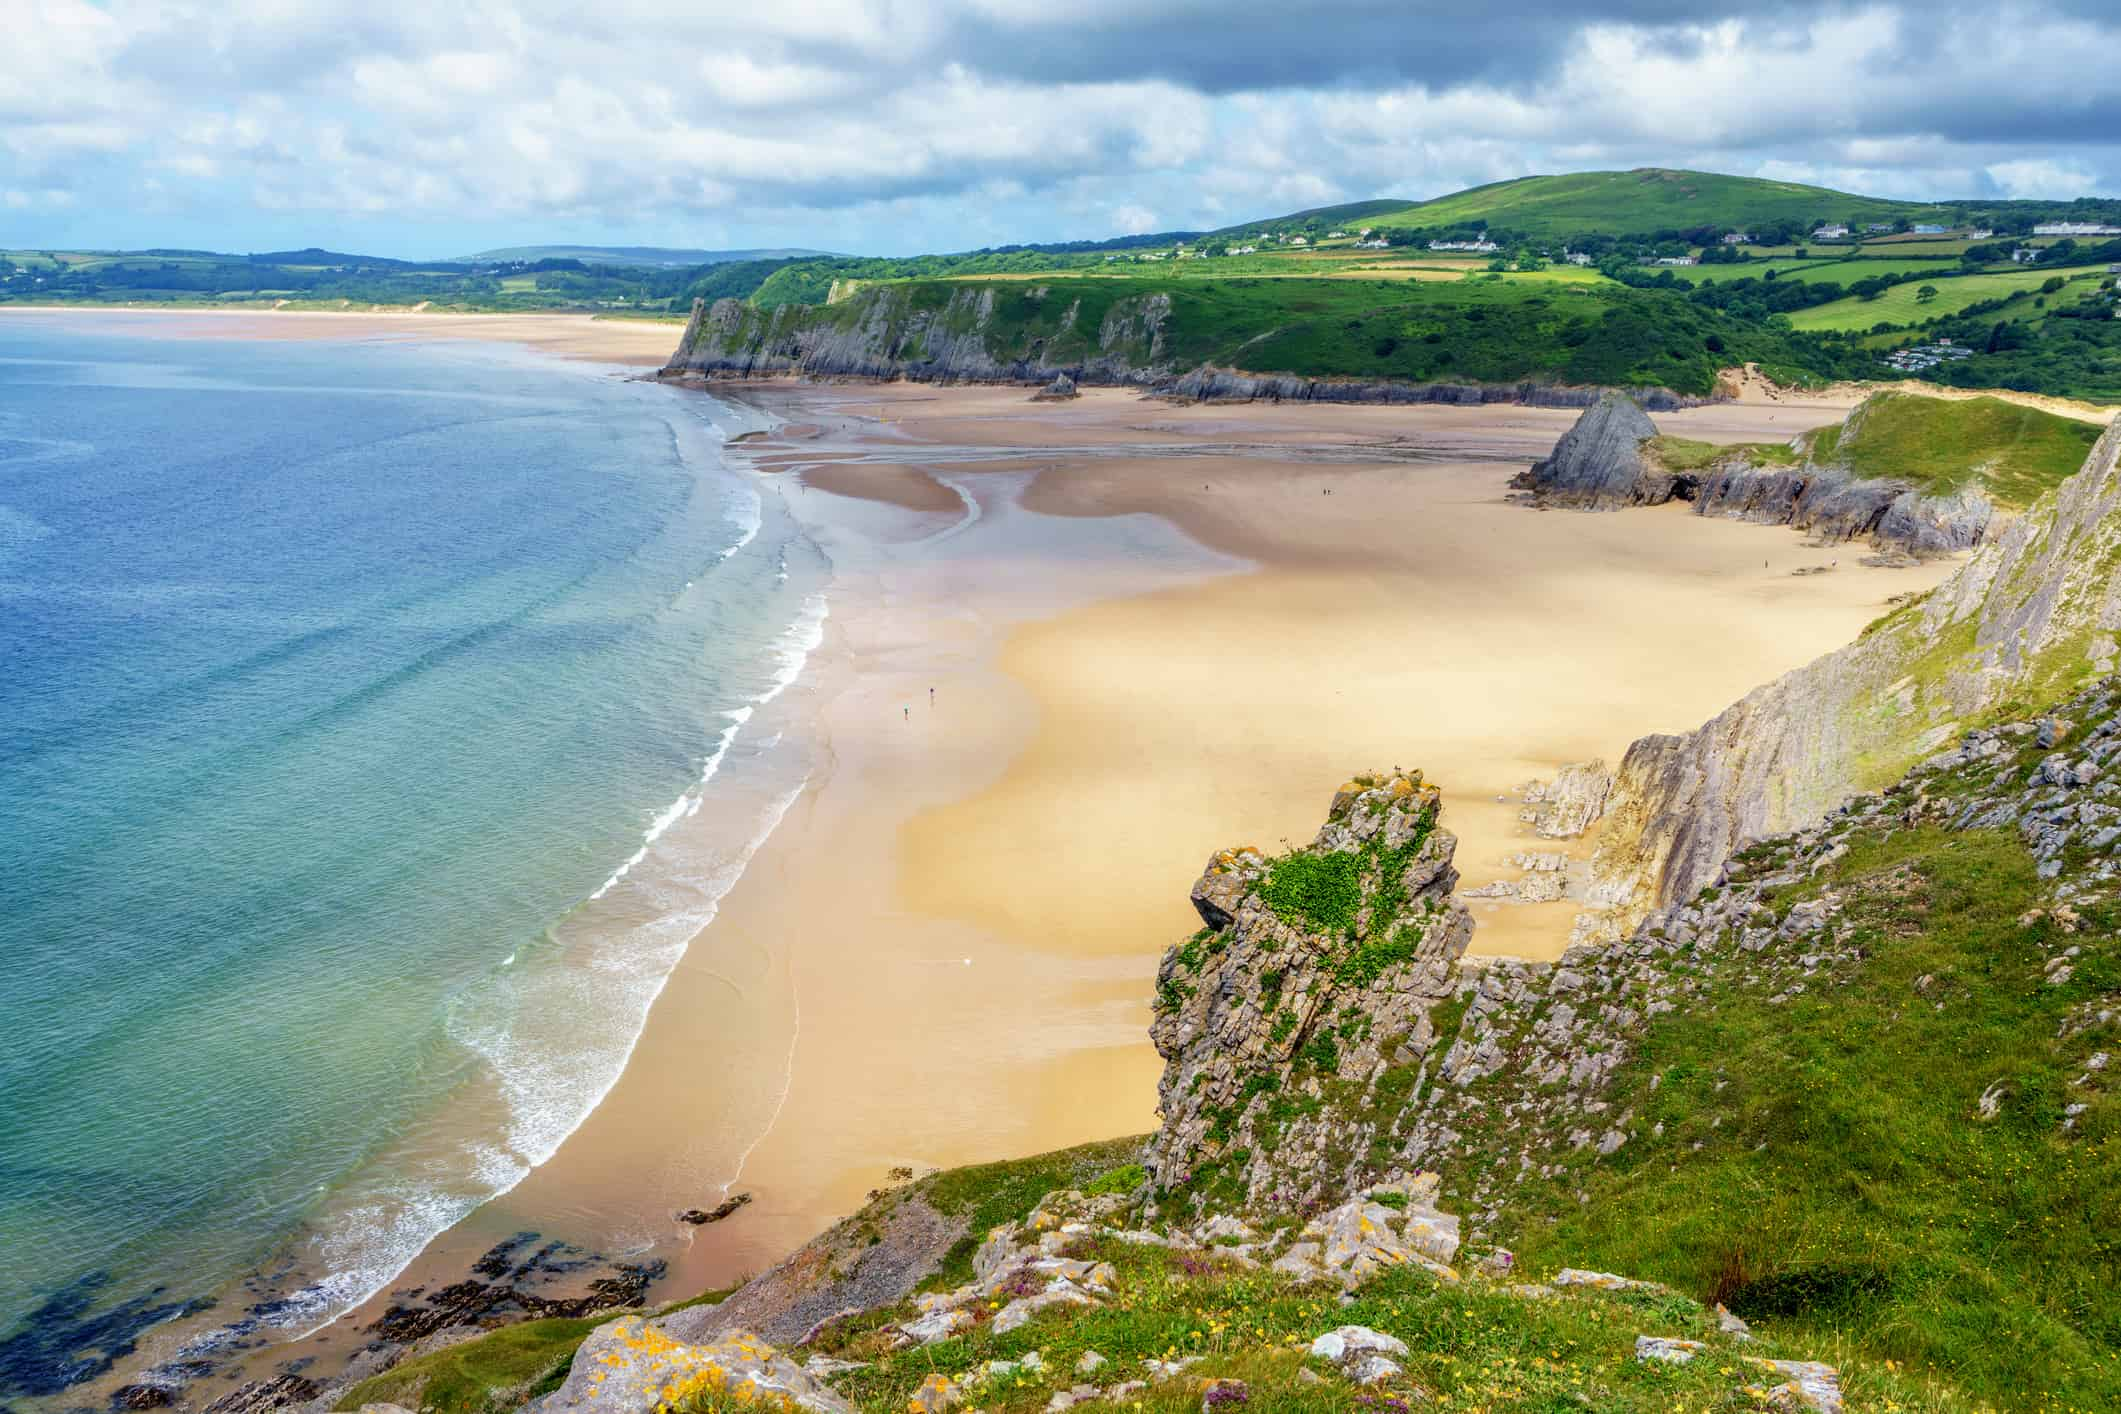 Three Cliffs Bay on Gower Peninsular, Wales, UK